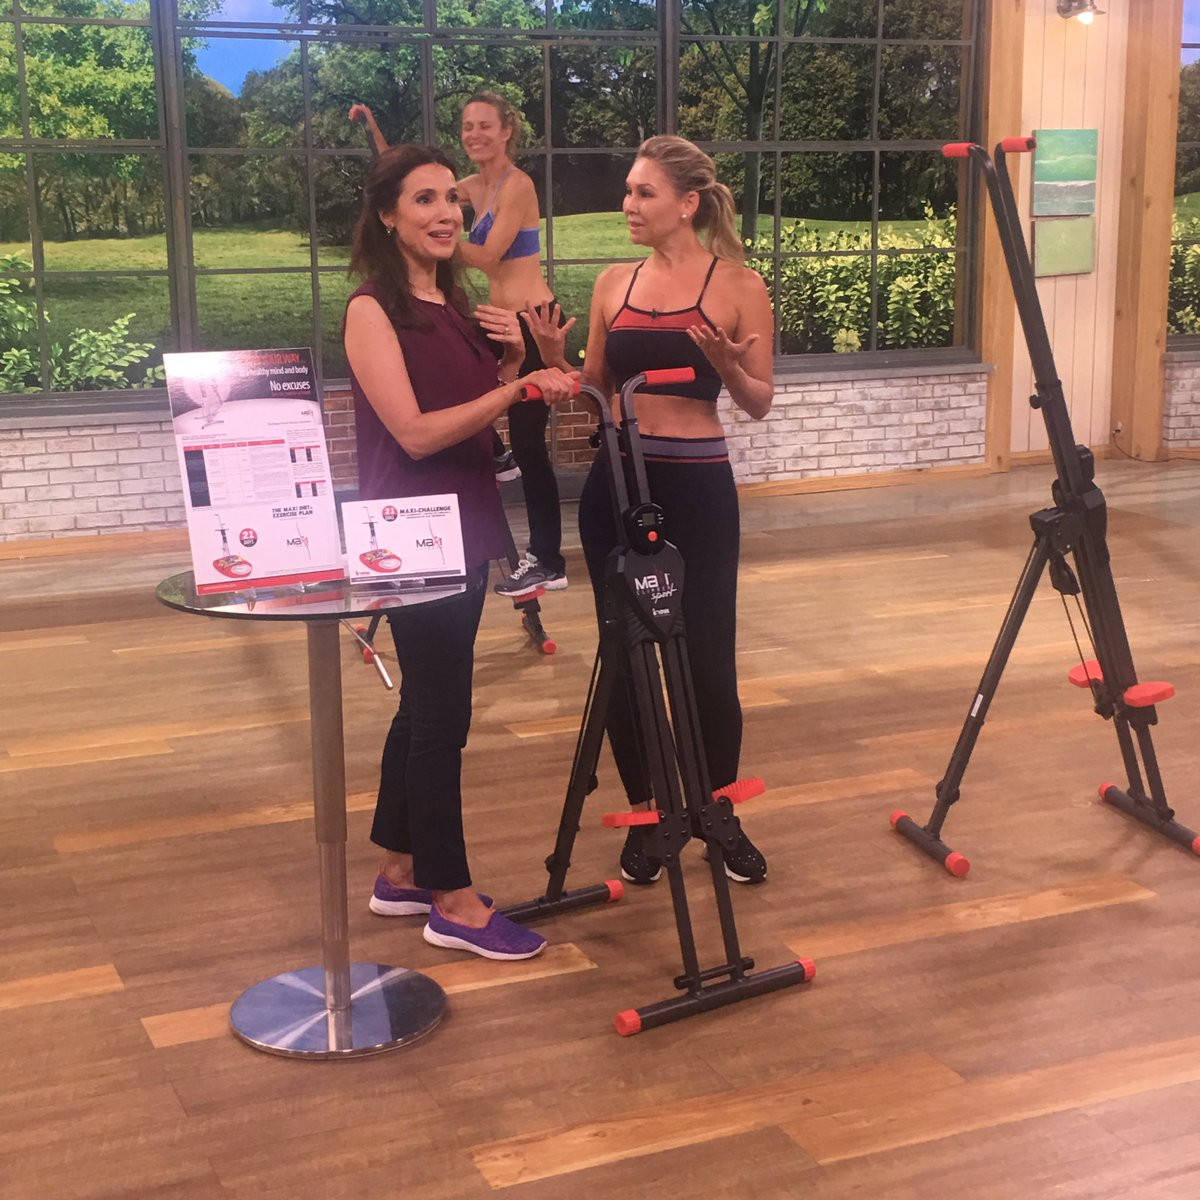 On @QVC #qvc2 right now sharing @MaxiClimber success stories.  Tune in now. https://t.co/qAN92XuToy